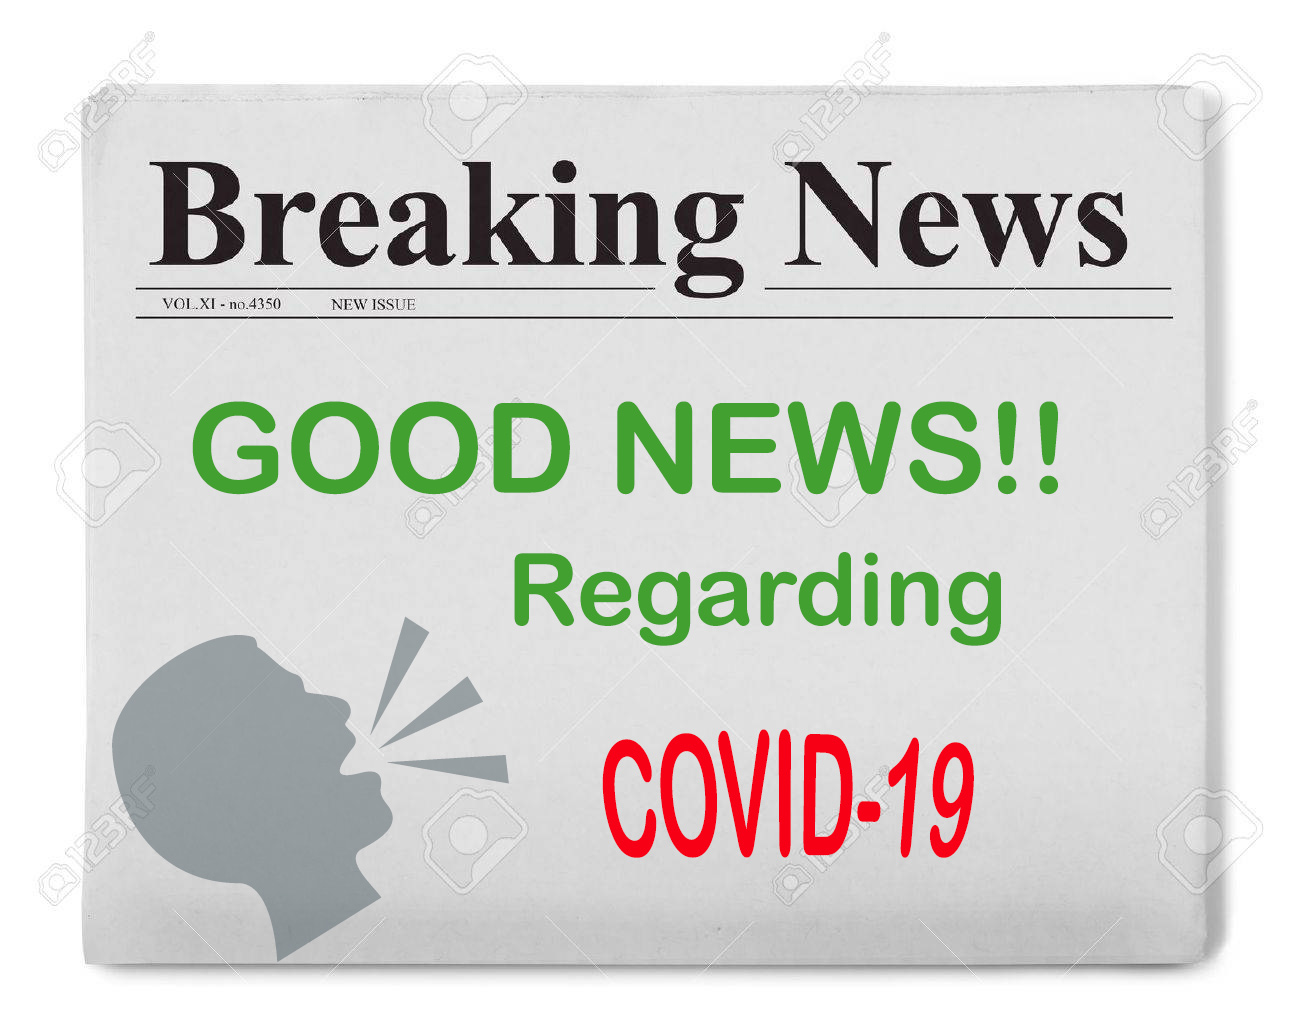 newspaper good news regarding covid-19